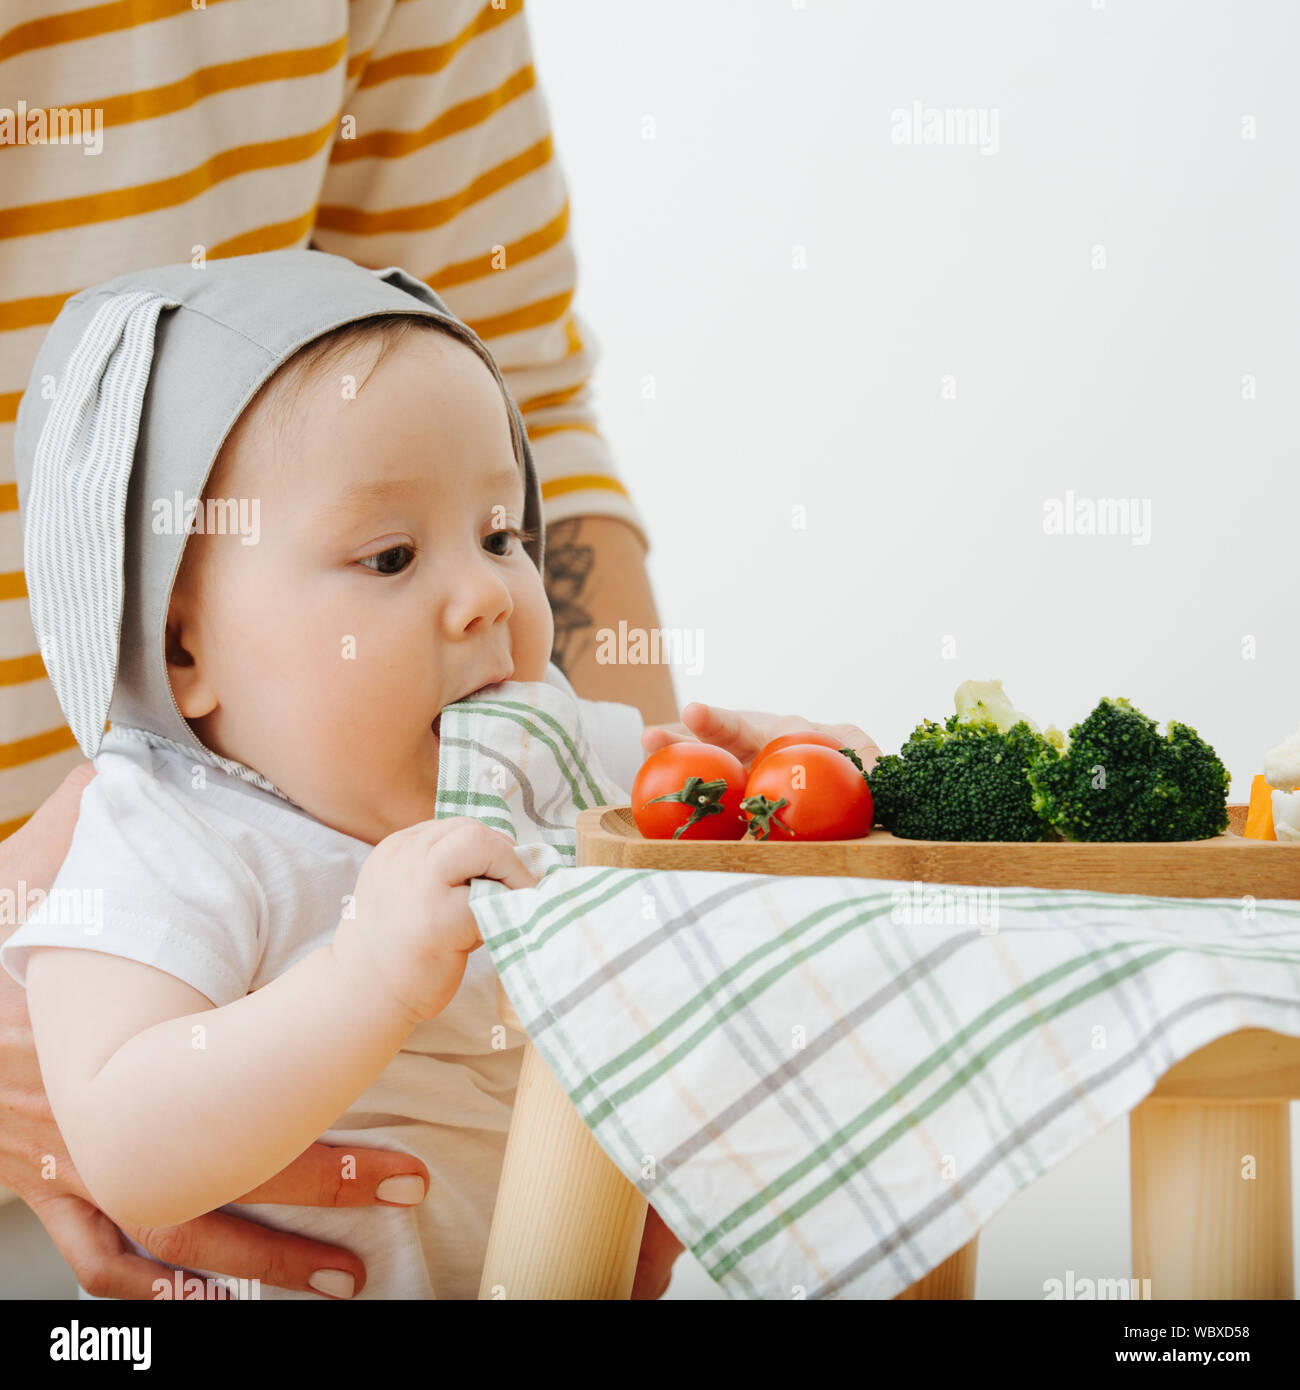 Active restless infant child is presented food Stock Photo